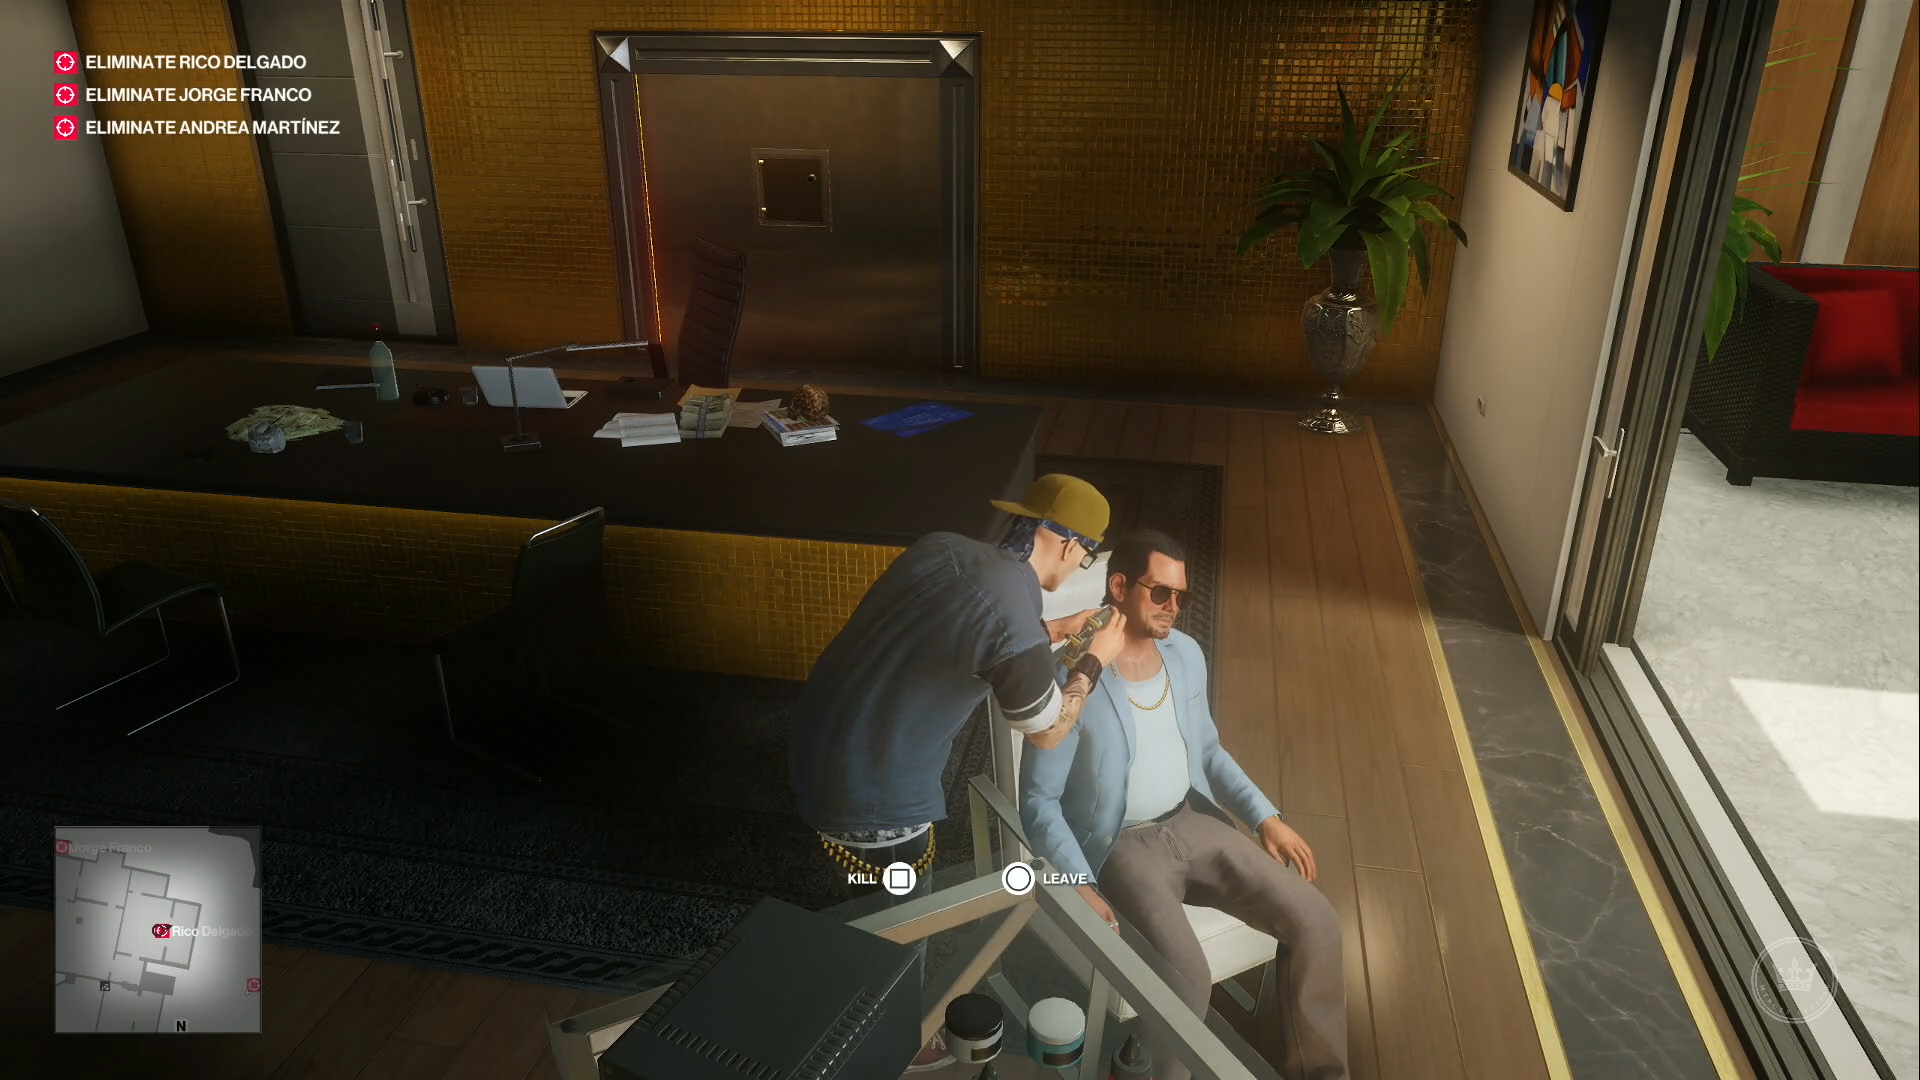 Agent 47 in street threads, tattooing the neck of one of his targets.